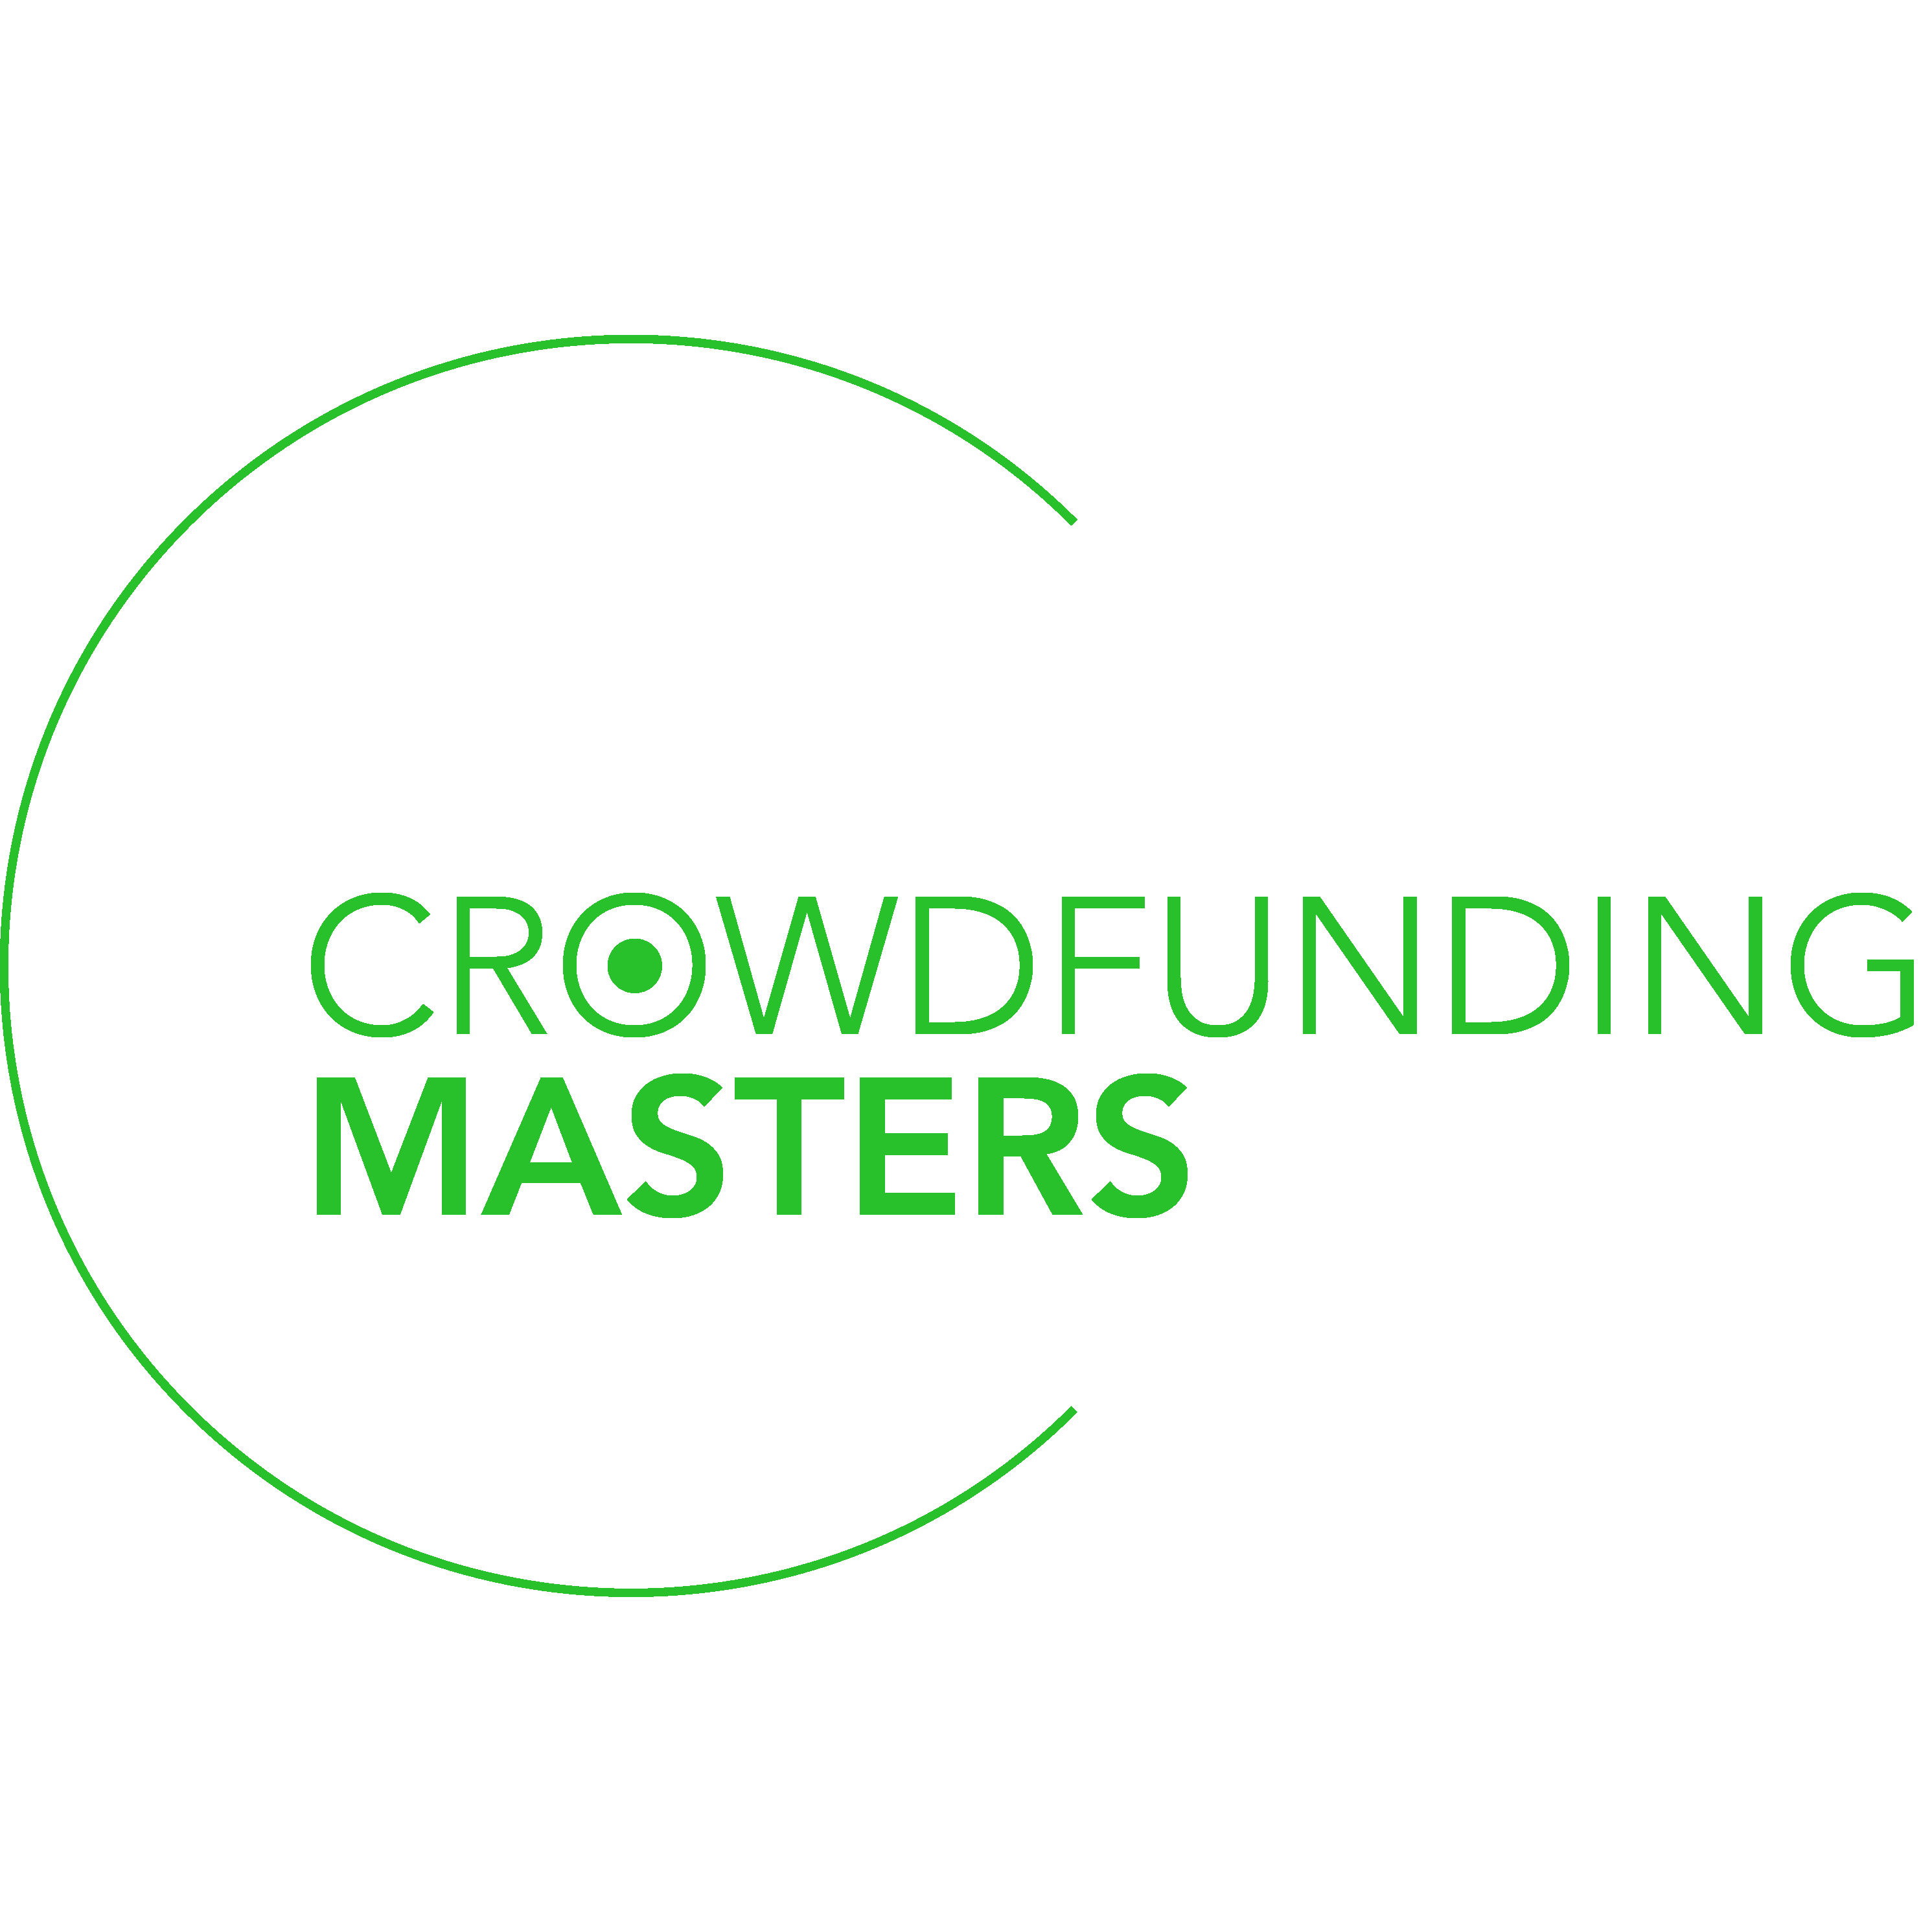 Crowdfunding Masters